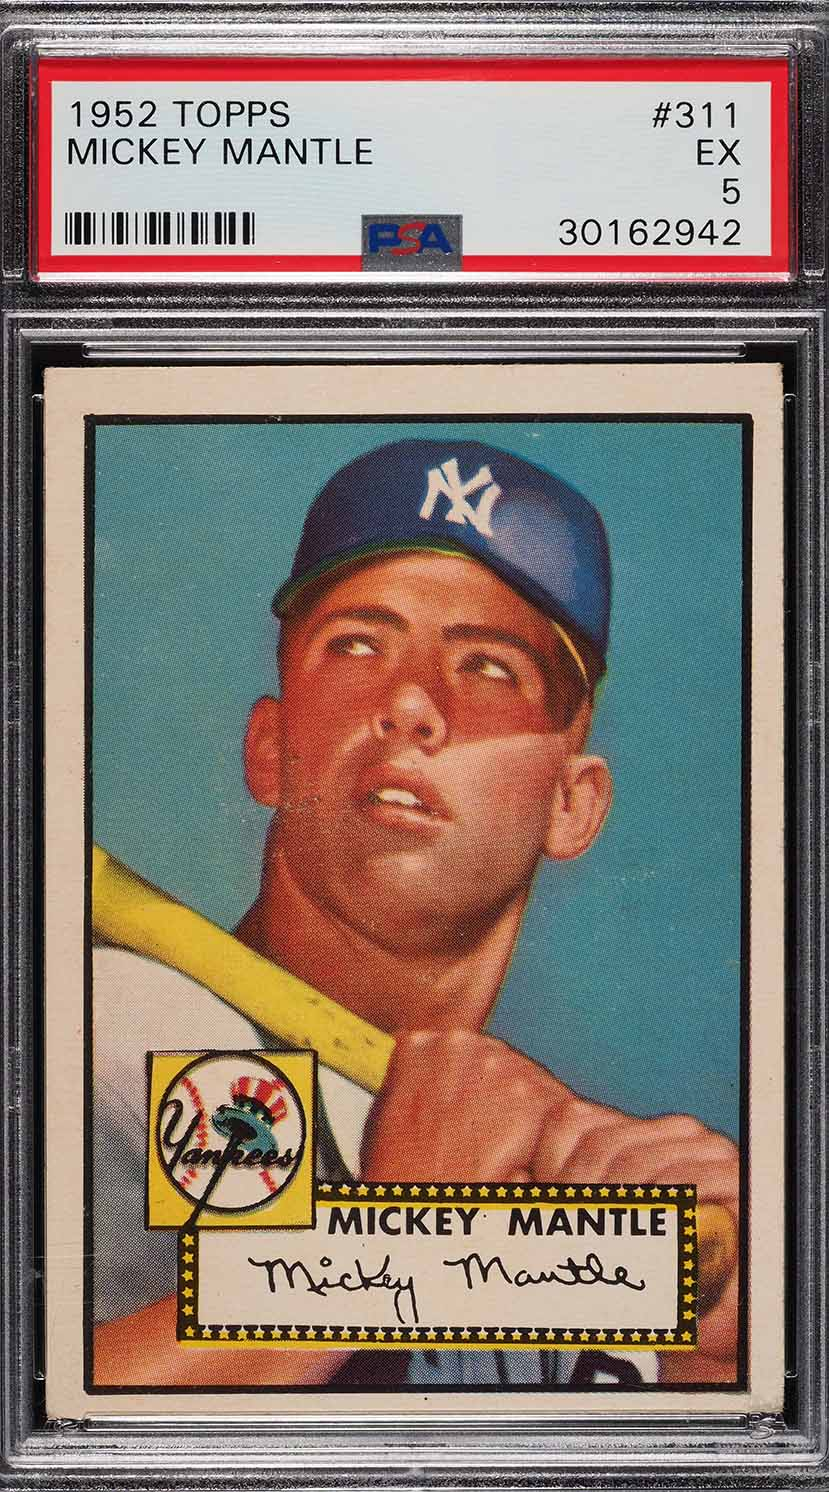 Image of: 1952 Topps Mickey Mantle #311 PSA 5 EX (PWCC)